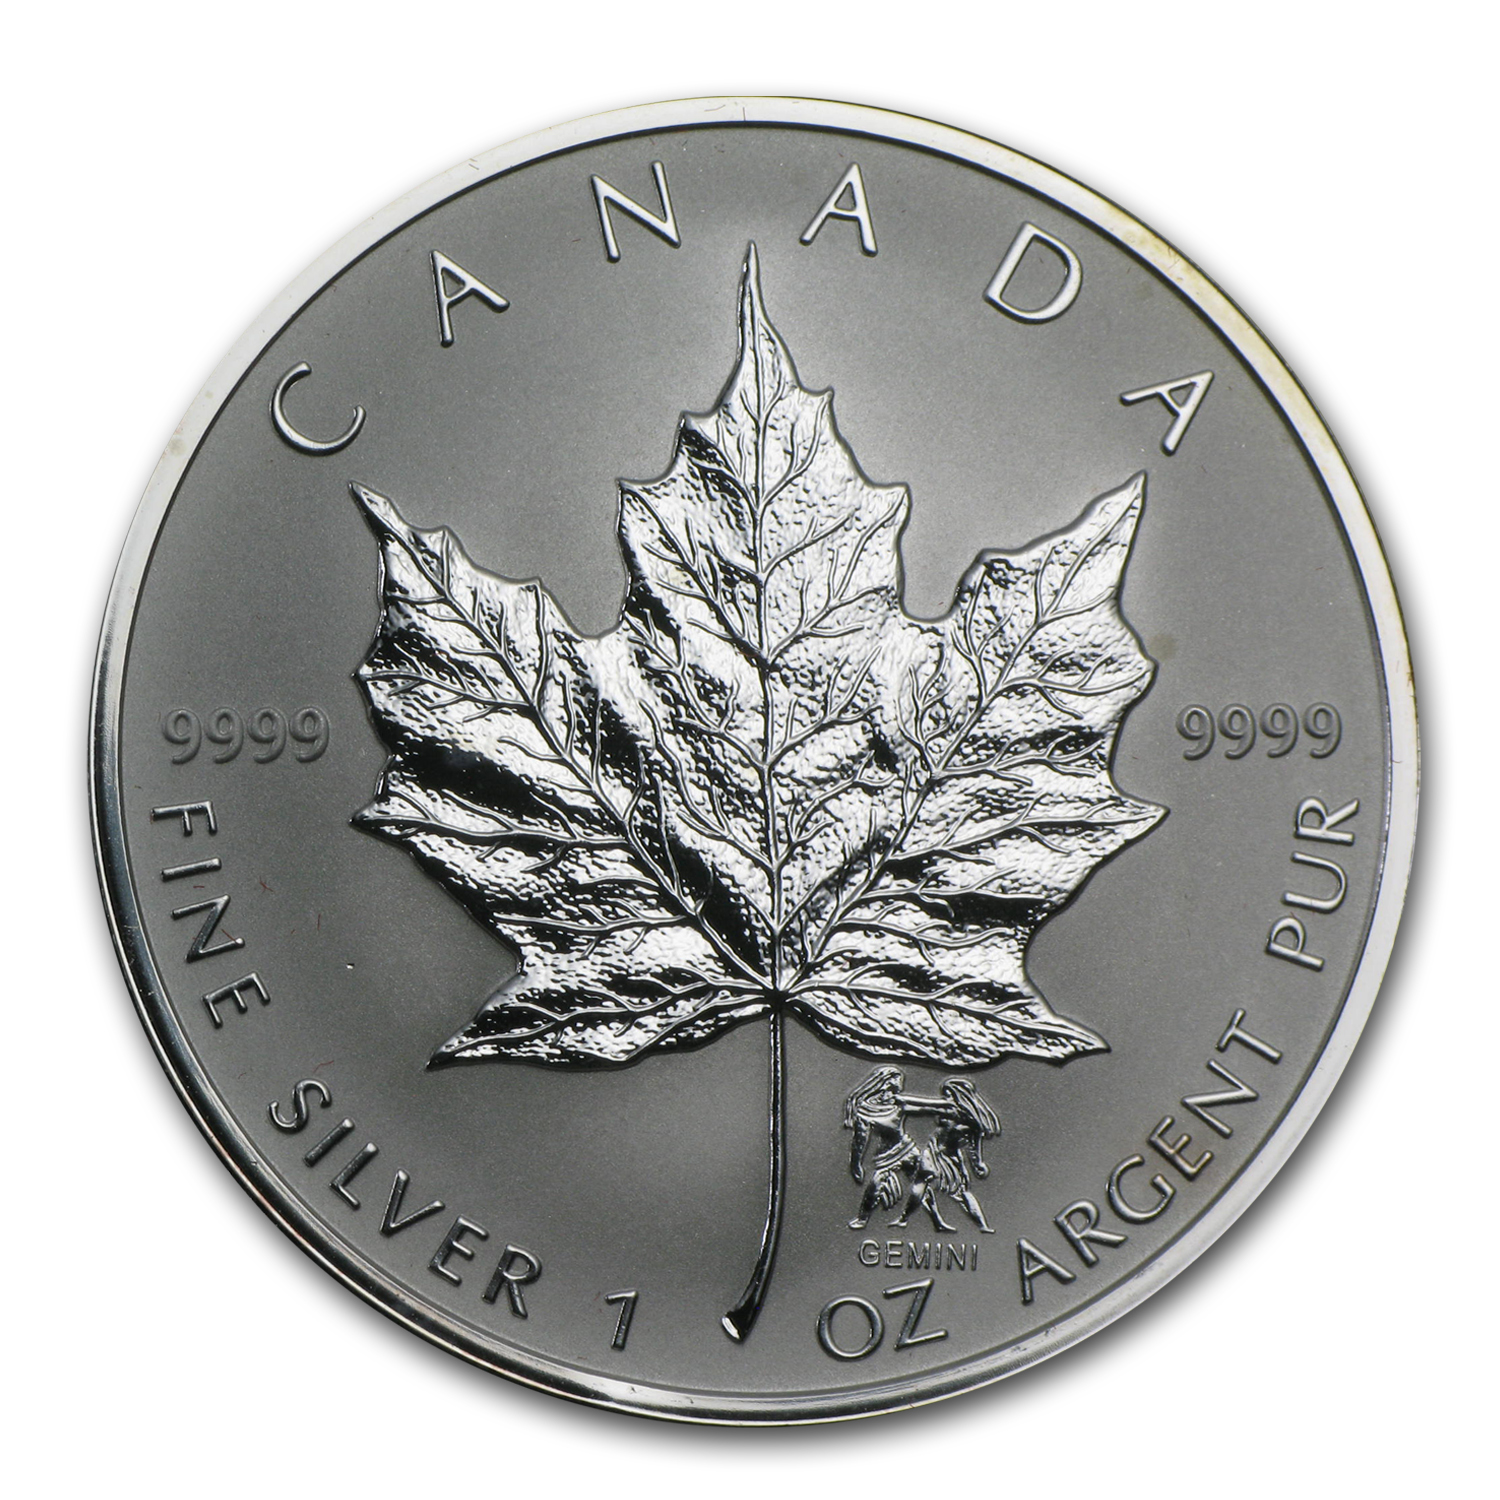 2004 1 oz Silver Canadian Maple Leaf - Gemini Zodiac Privy